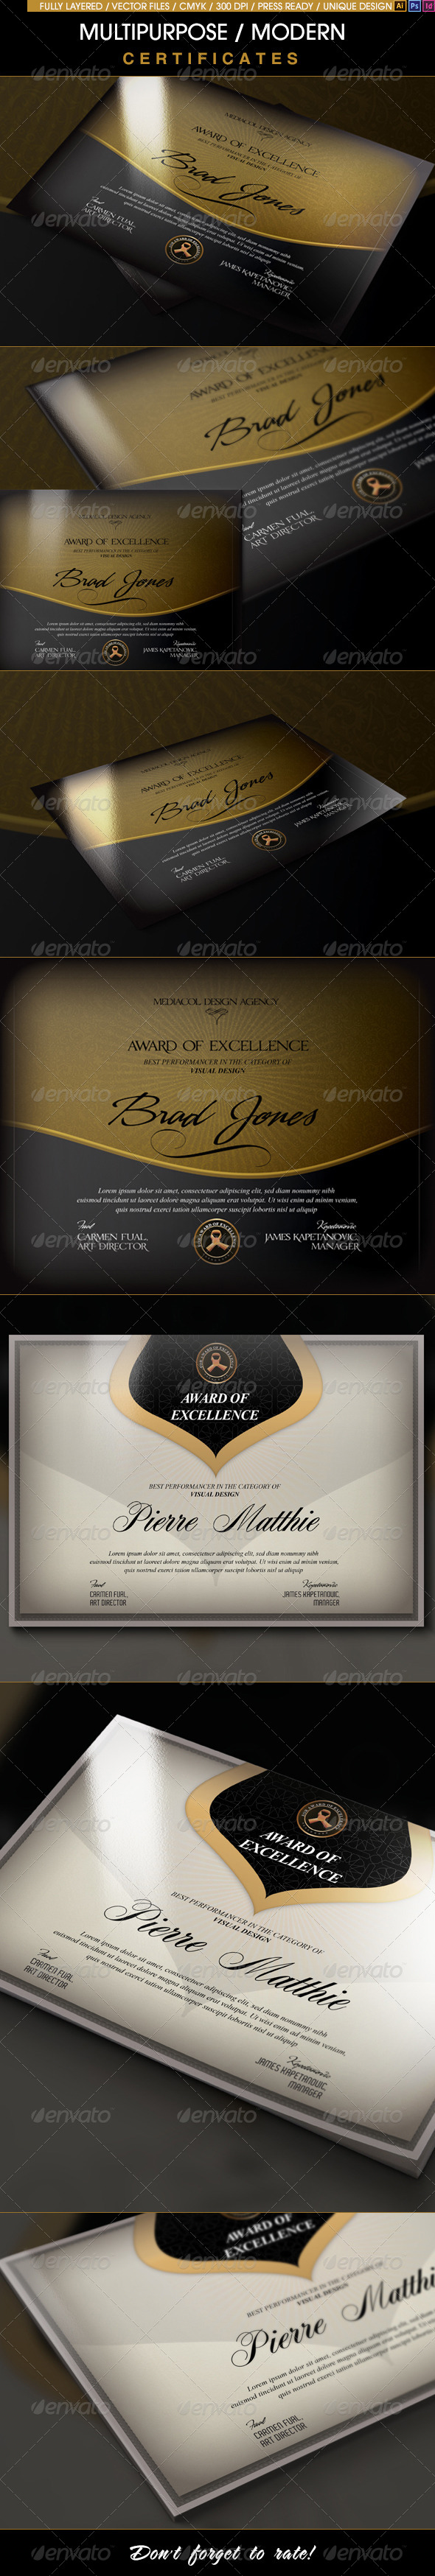 GraphicRiver A Great Deal Multipurpose Modern Certificates 8632510